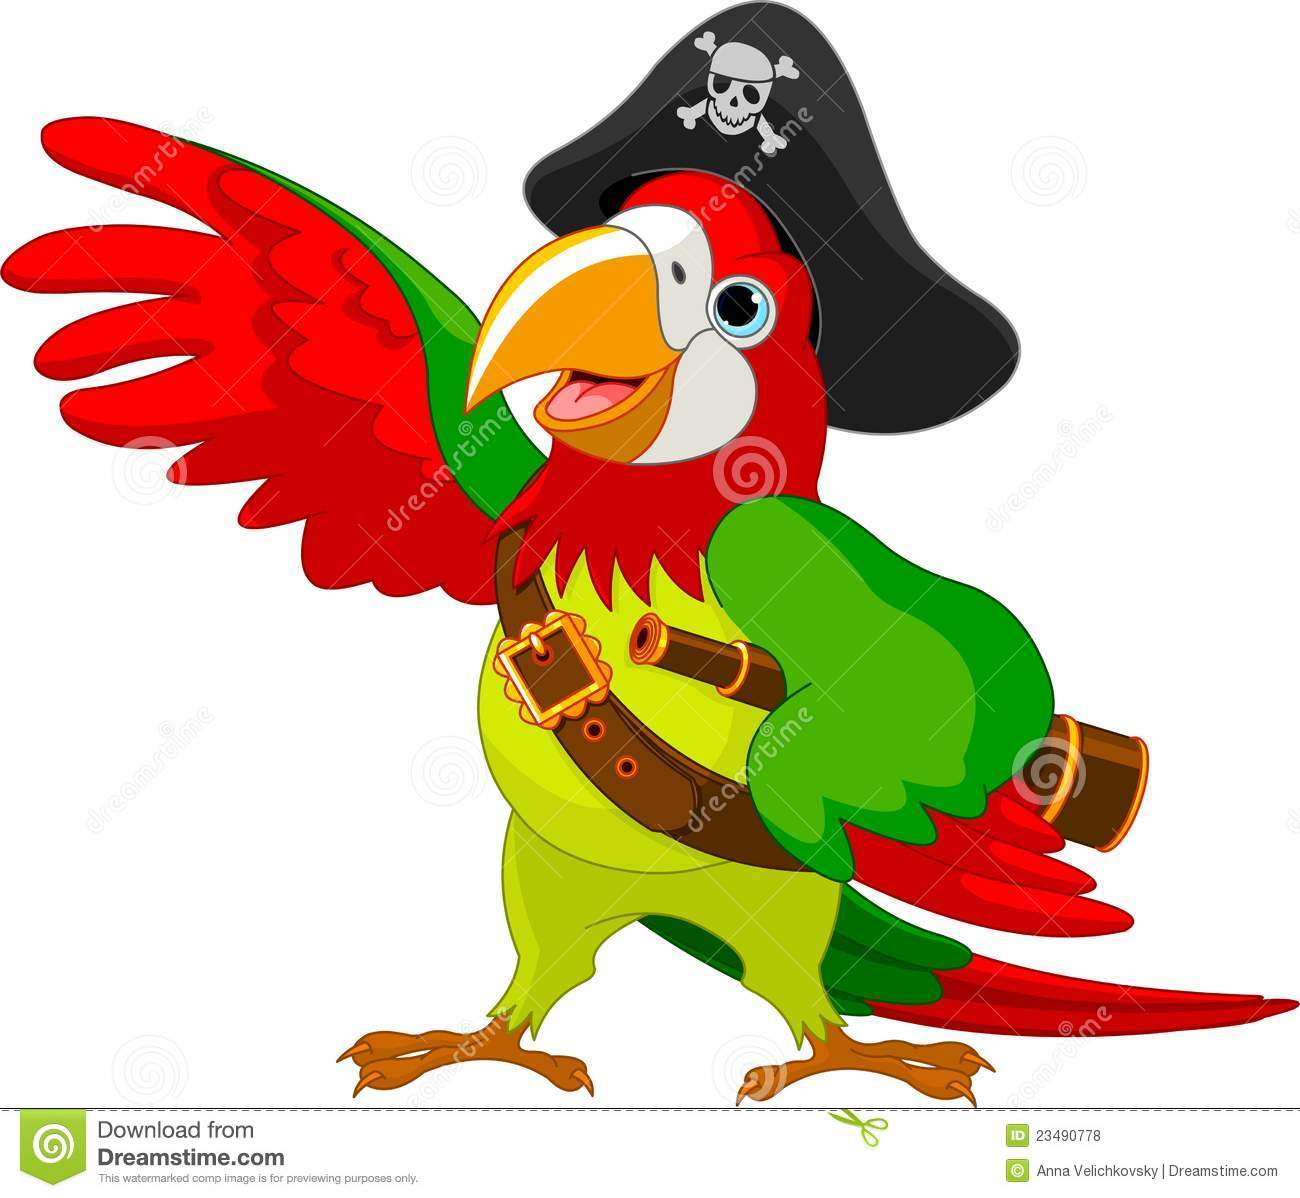 Pirate Parrot Royalty Free Stock Photos - Image: 23490778